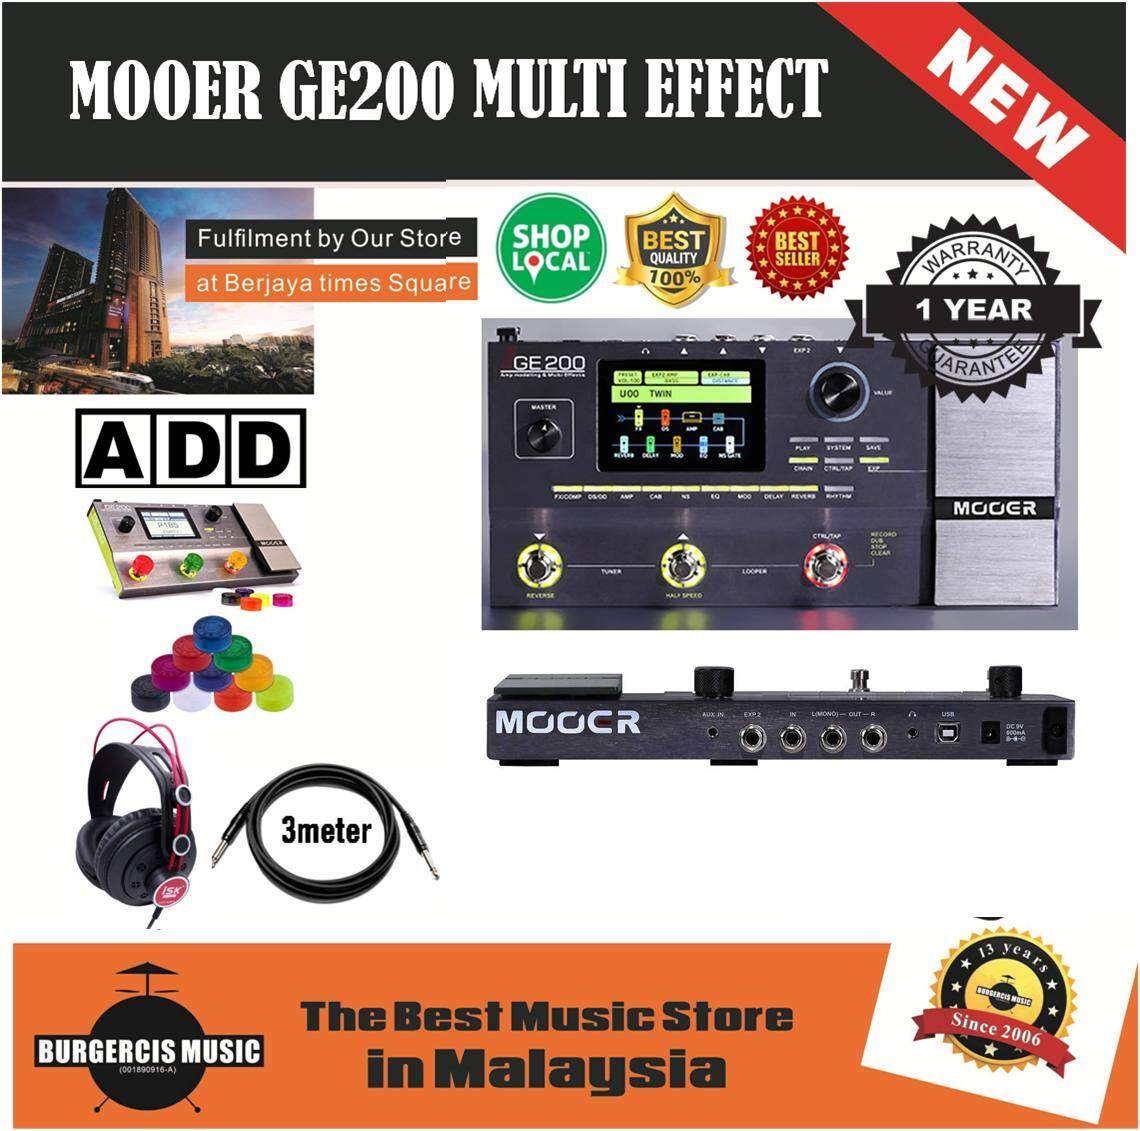 Mooer GE200 Amp Modelling Multi Effects Guitar Effect Pedal 26 built-in  speaker cab models + support for 3rd party IR cab models + Compressors +